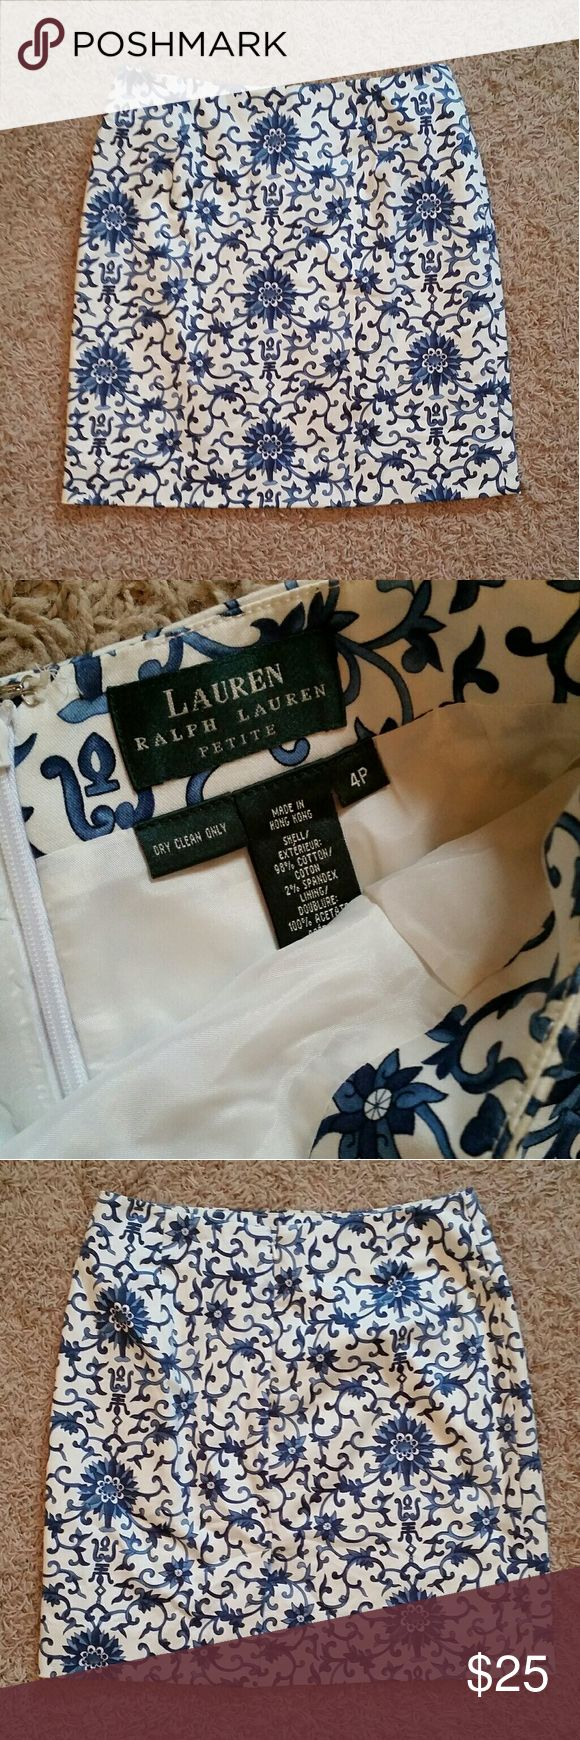 Ralph Lauren Skirt Very nice blue and white skirt by Ralph Lauren. Size 4P.   📦Bundle 3+ items to save 30% Ralph Lauren Skirts